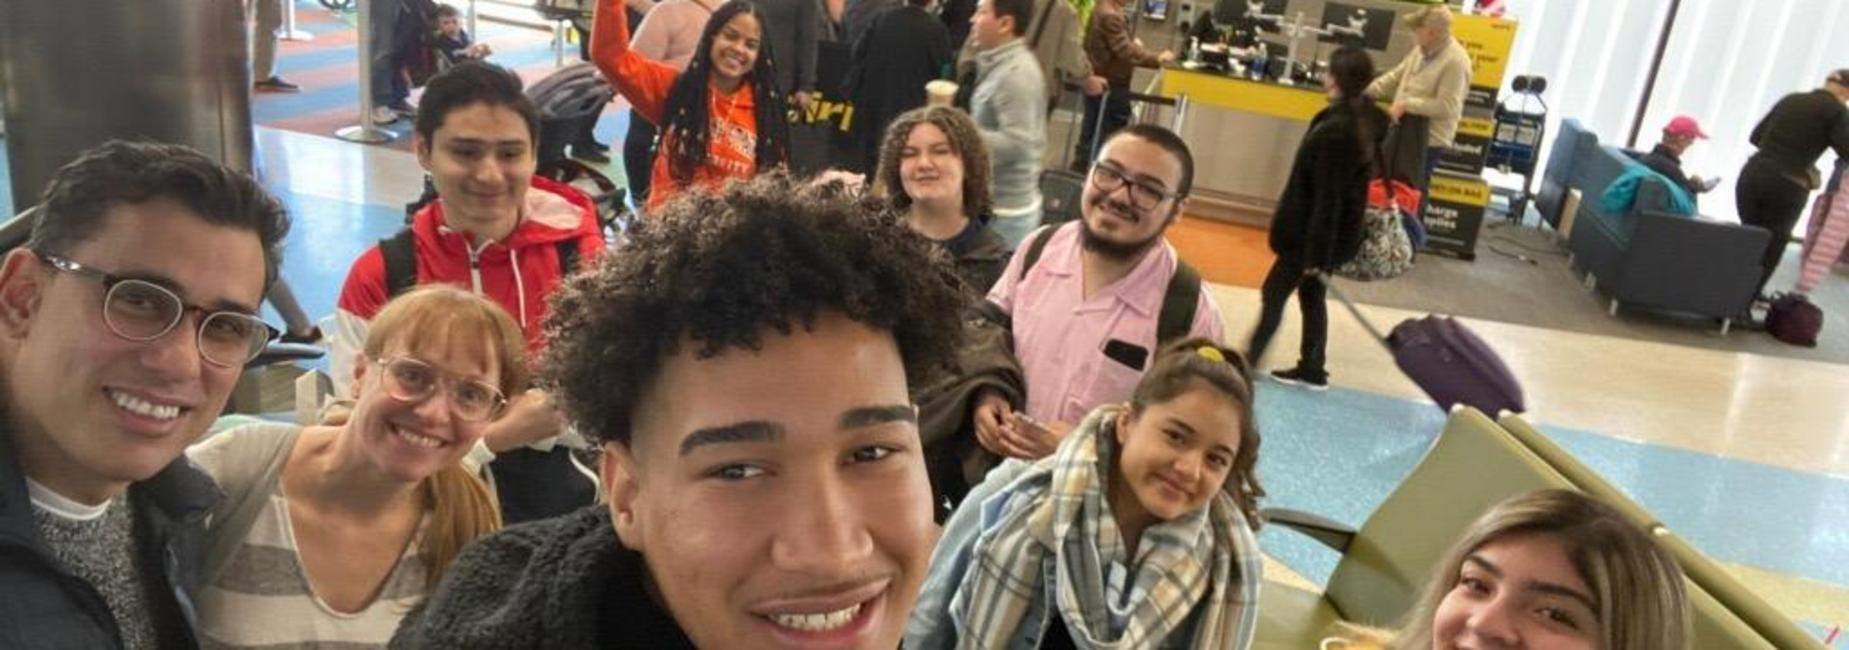 Students at the airport on their way to Puerto Rico